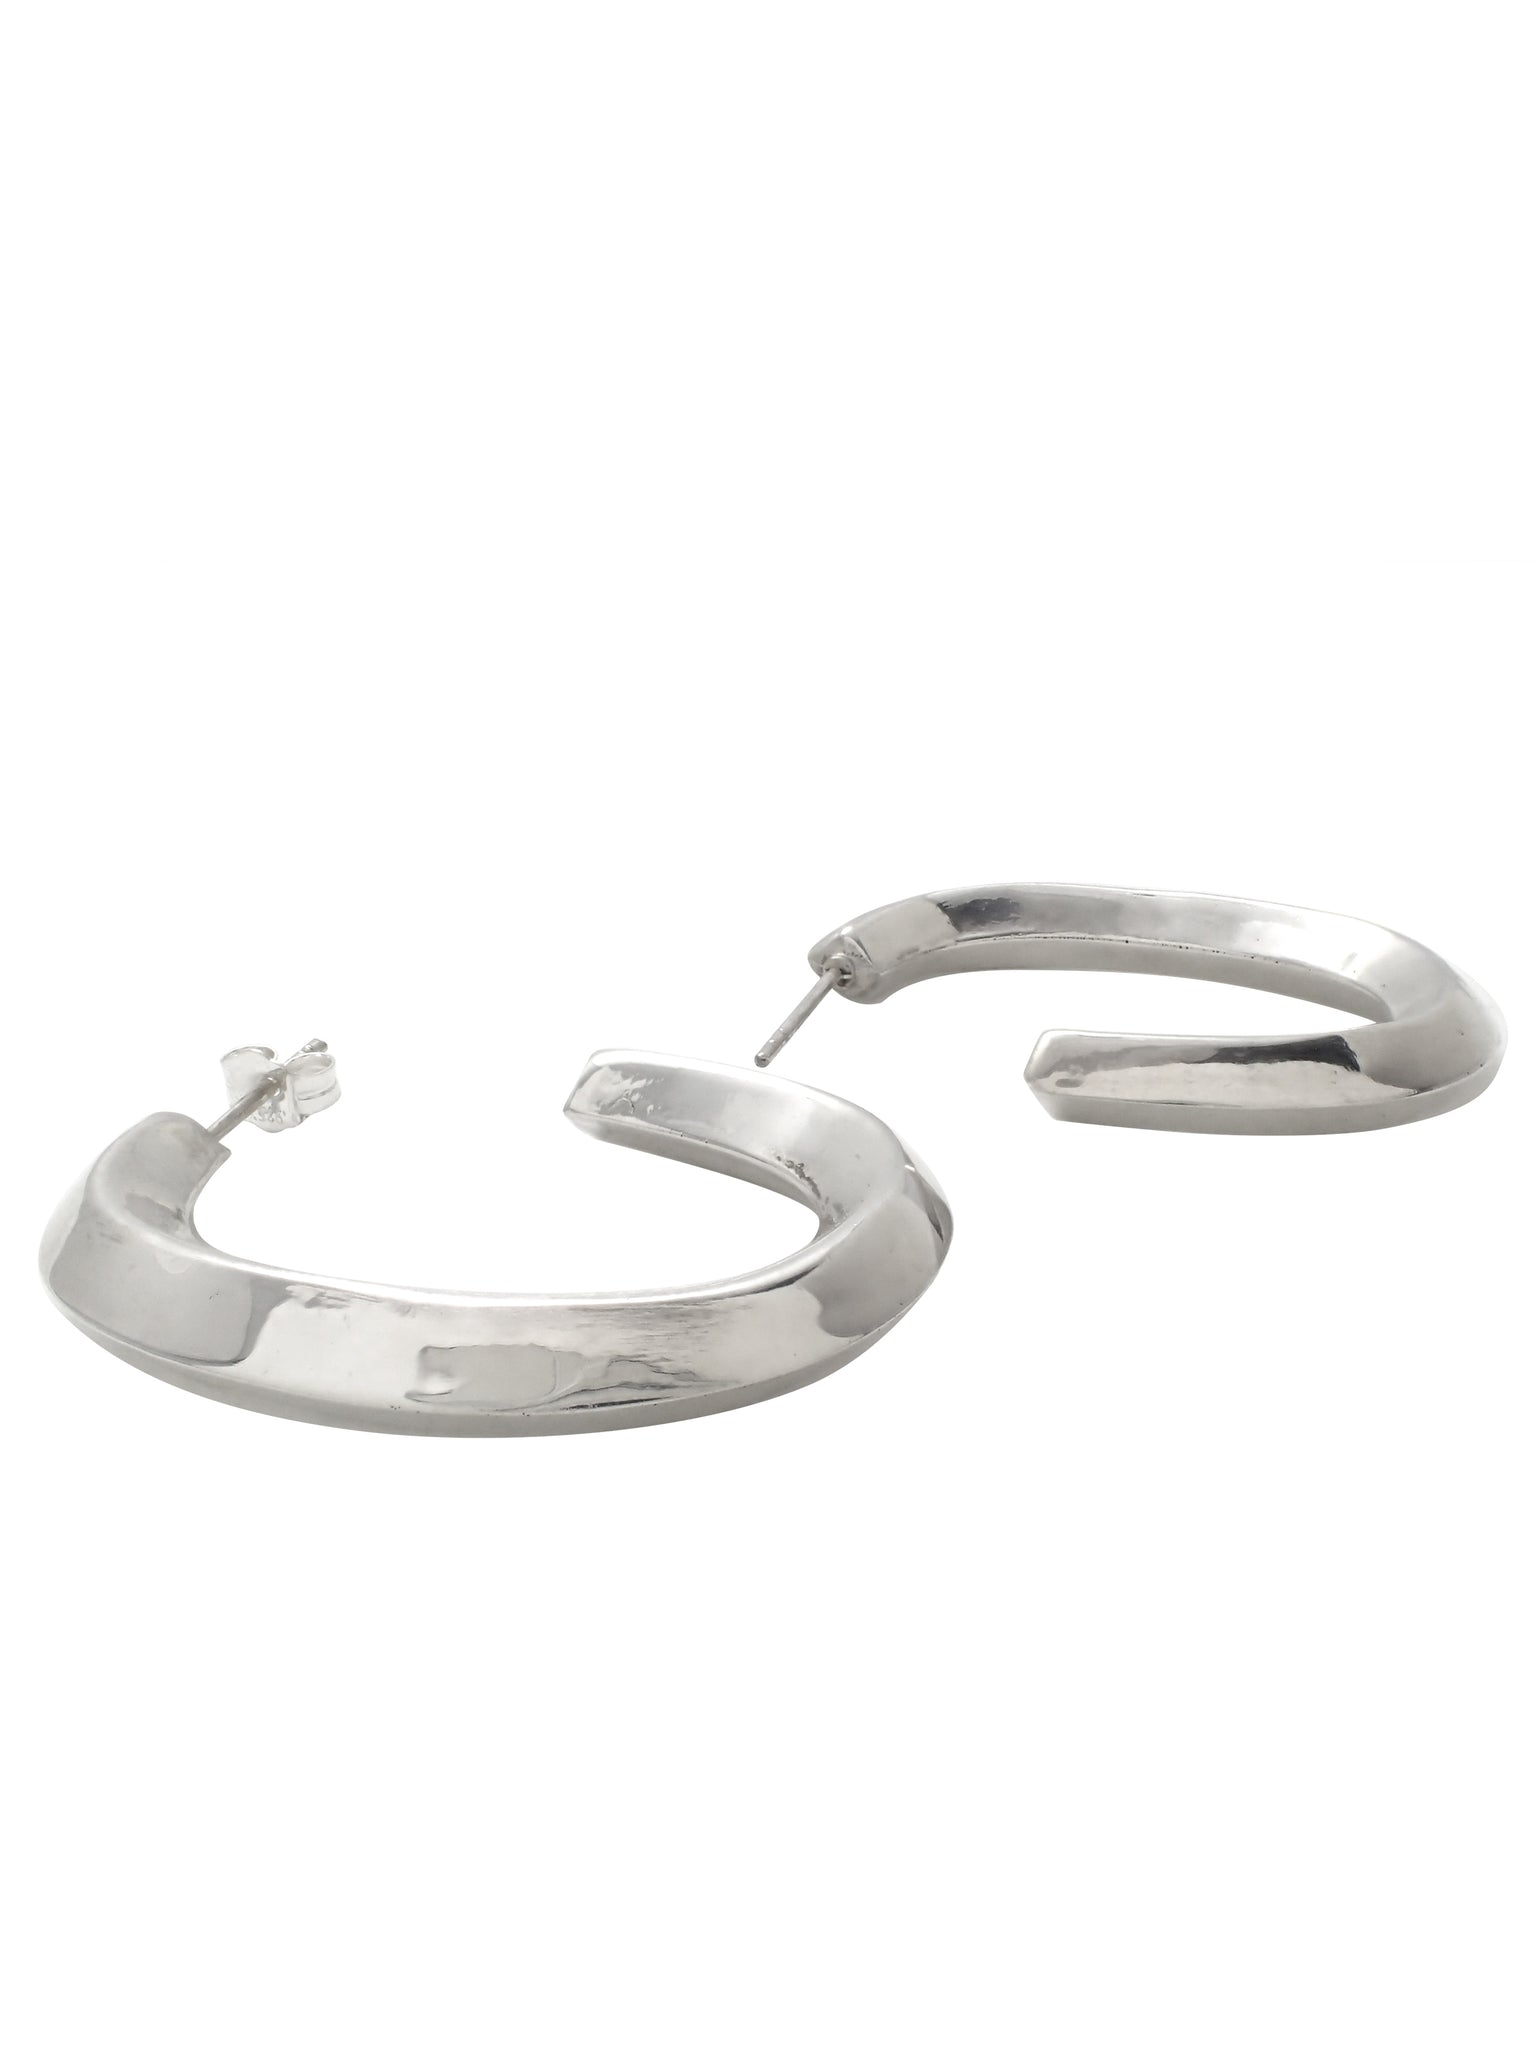 Oblong Square Hoops / Sterling Silver